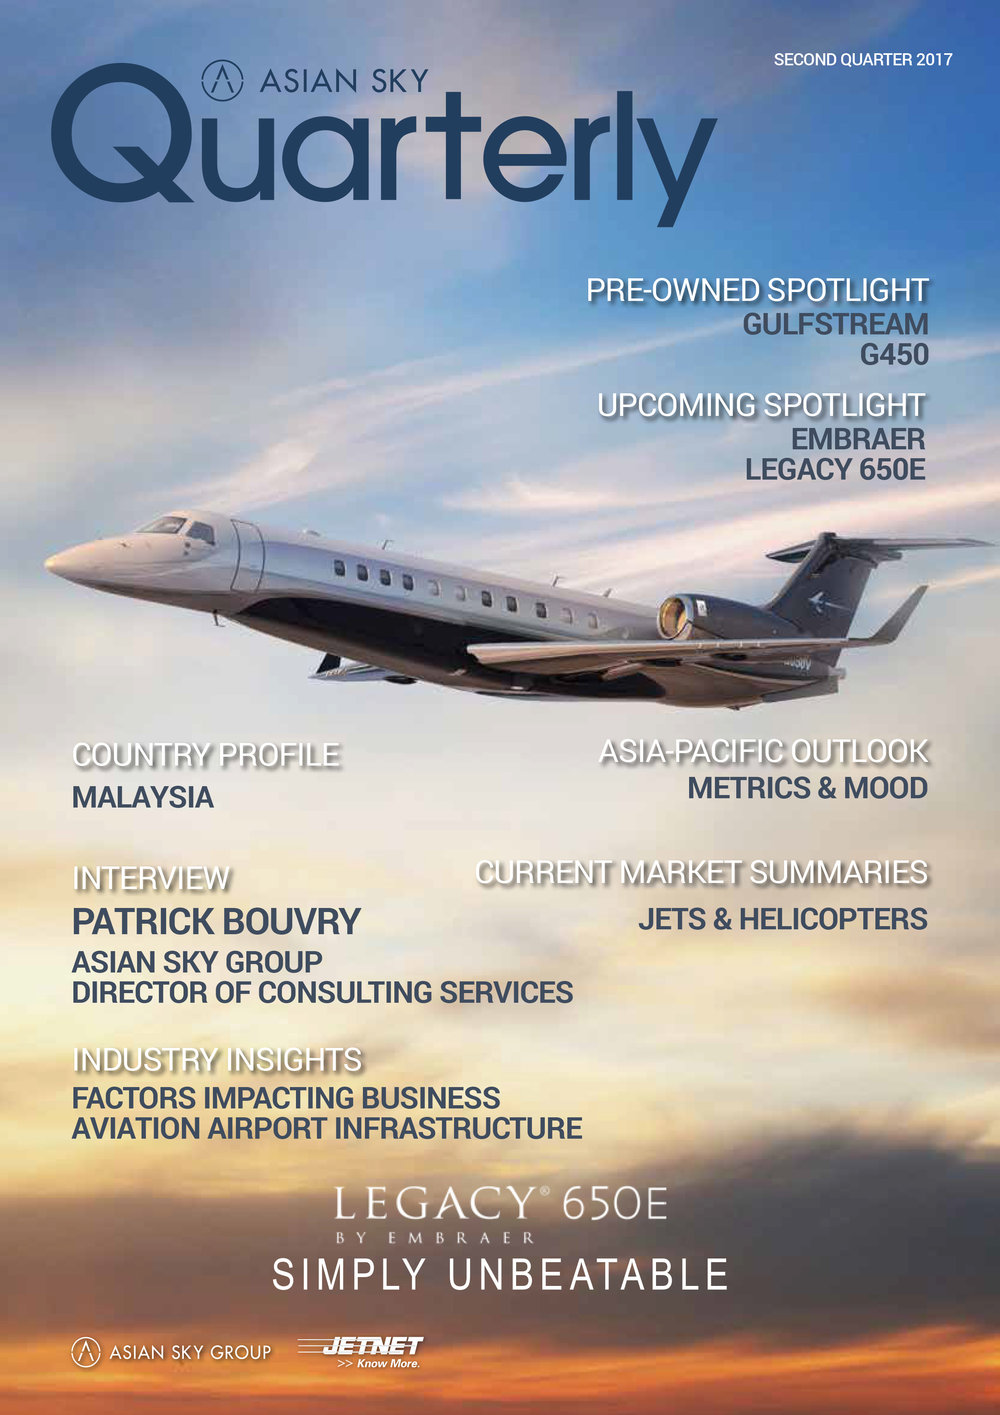 Asian Sky Quarterly - Q2 2017